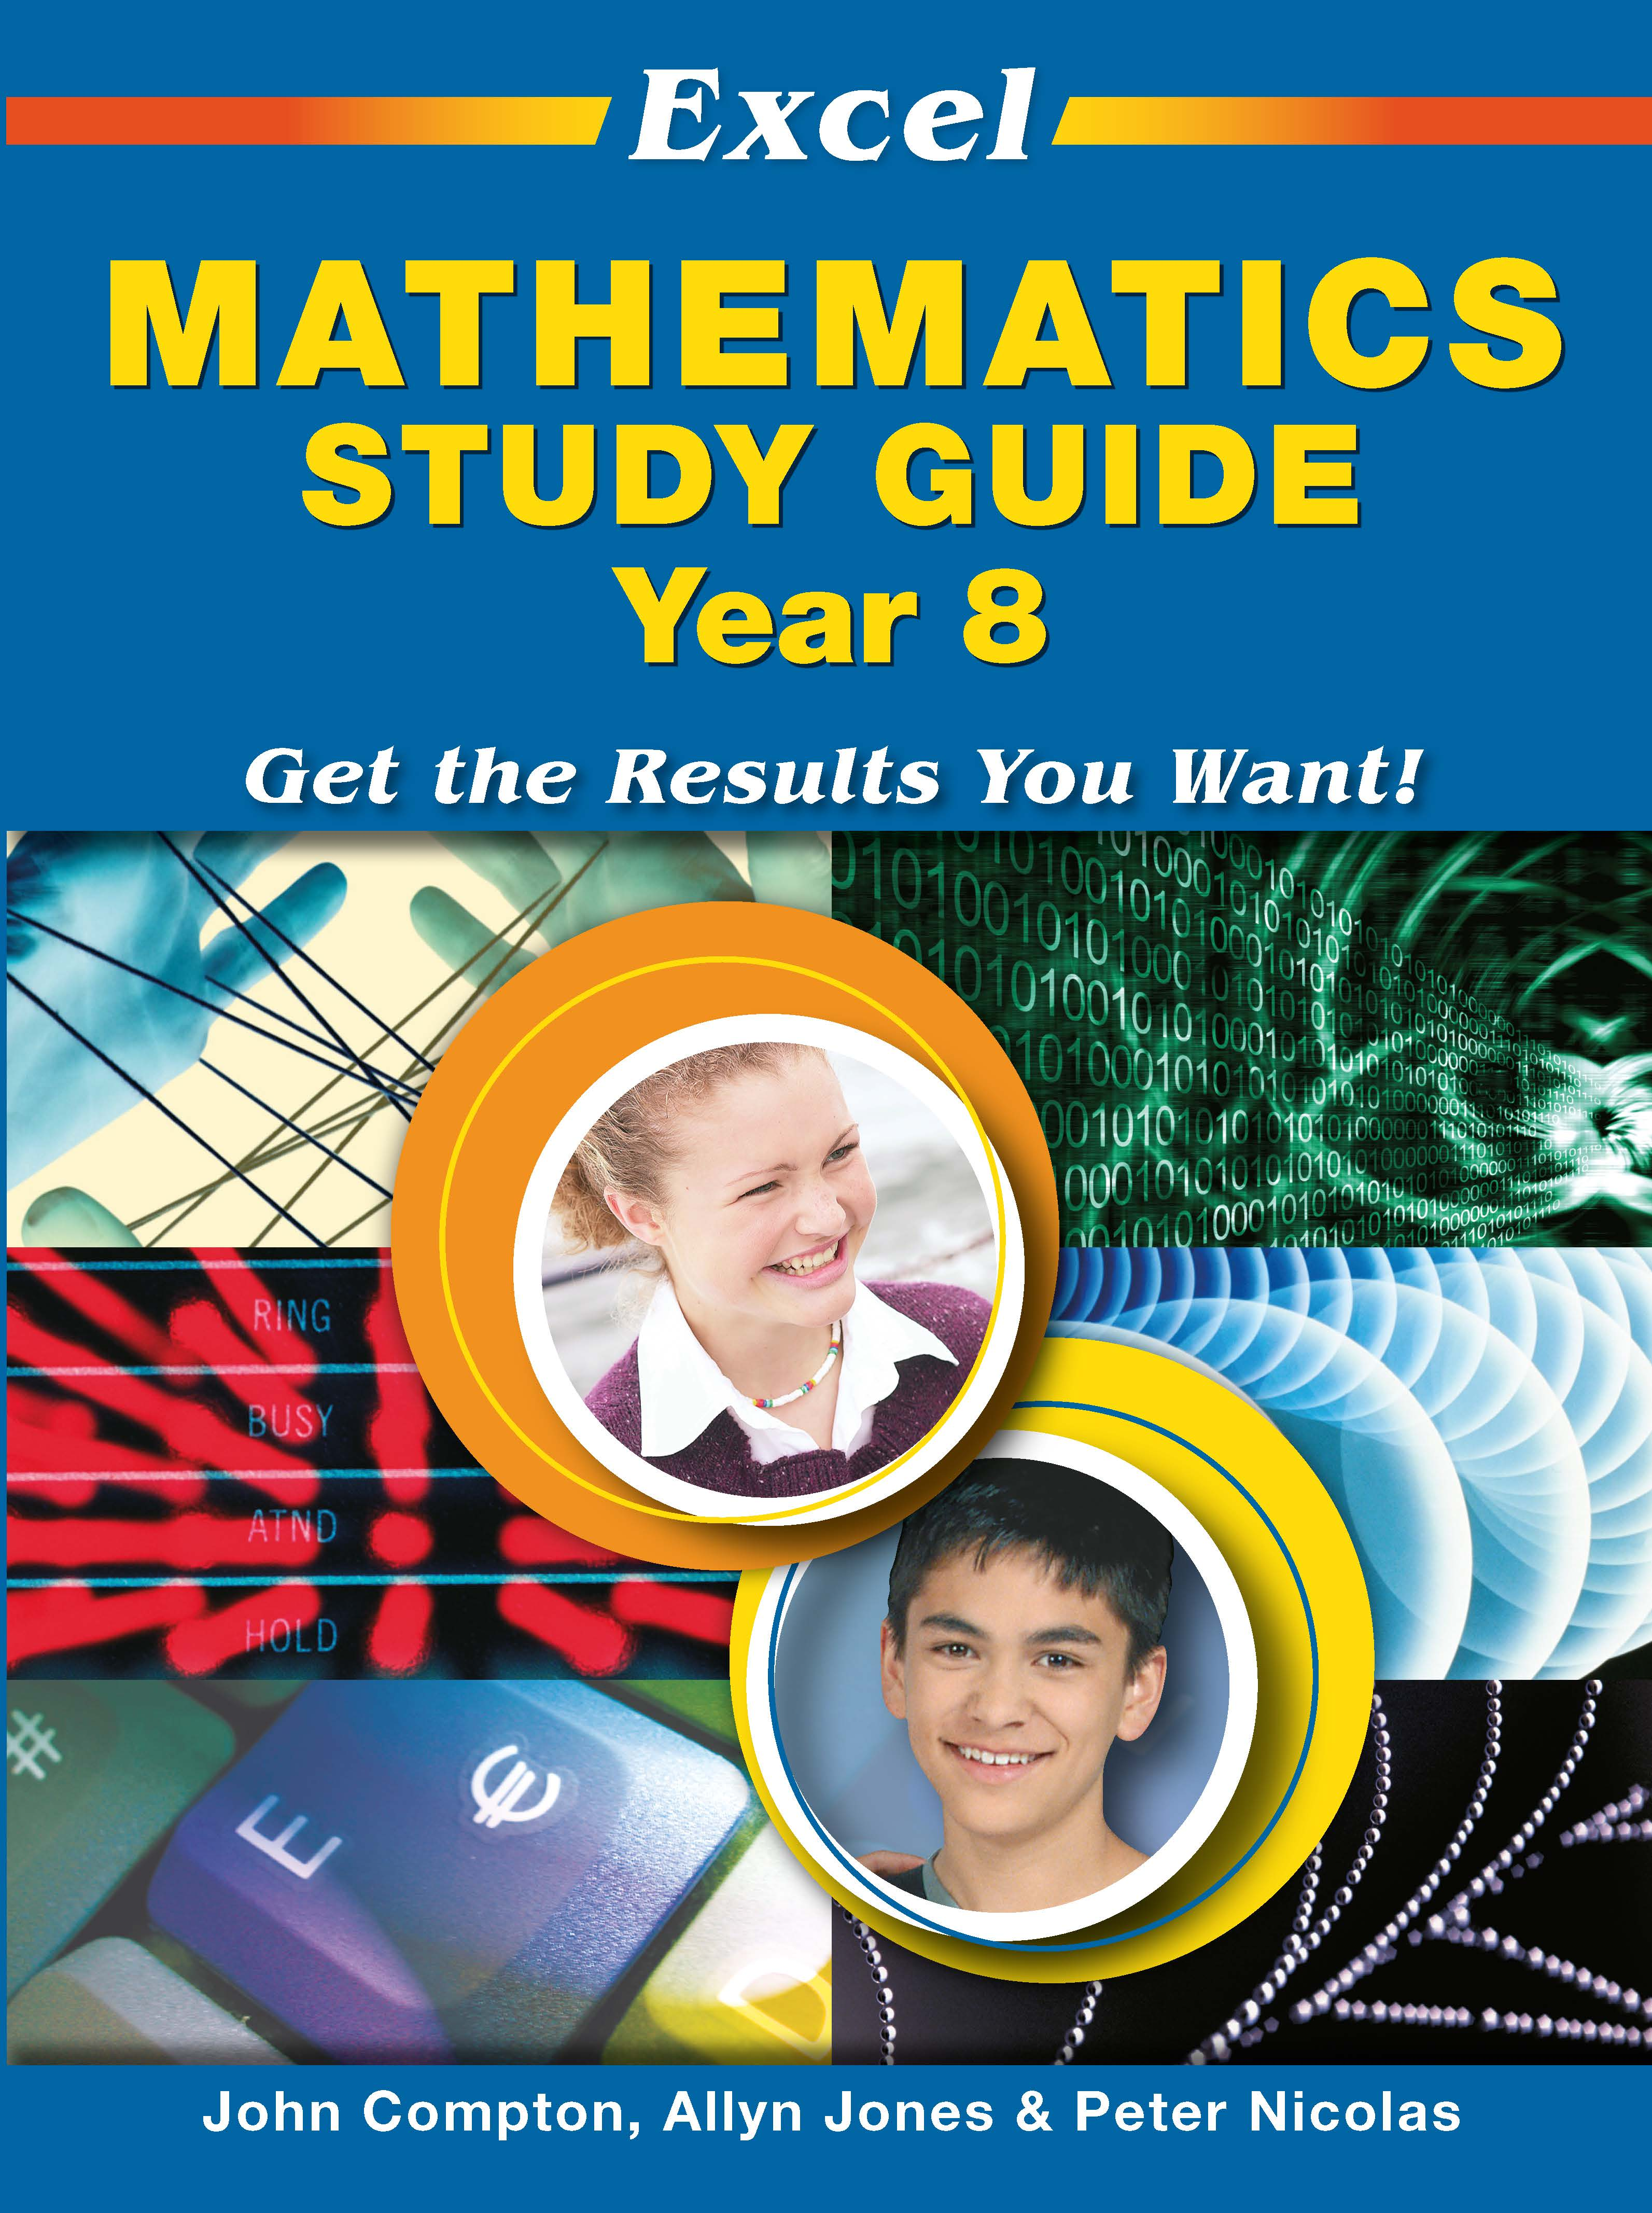 Excel Mathematics Study Guide Year 8